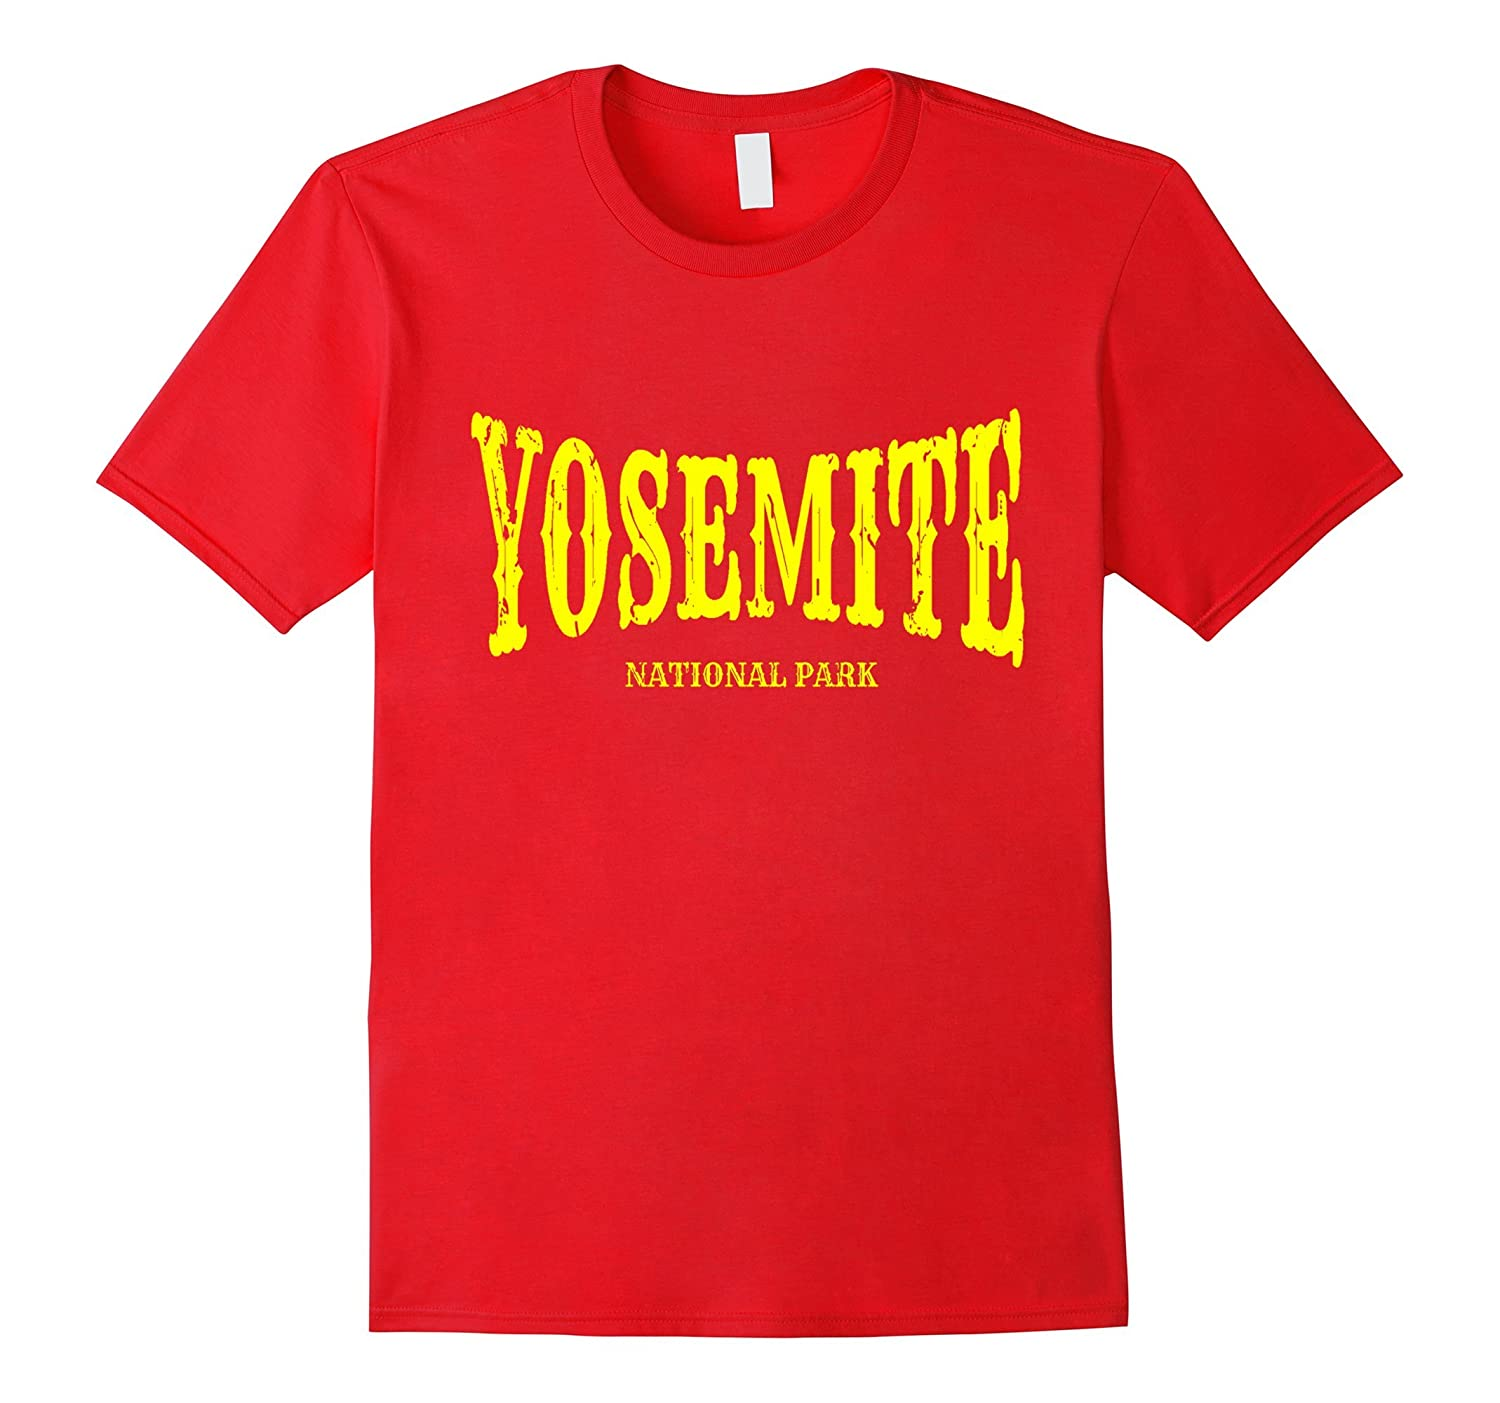 Yosemite National Park T-Shirt with Yellow Text-PL